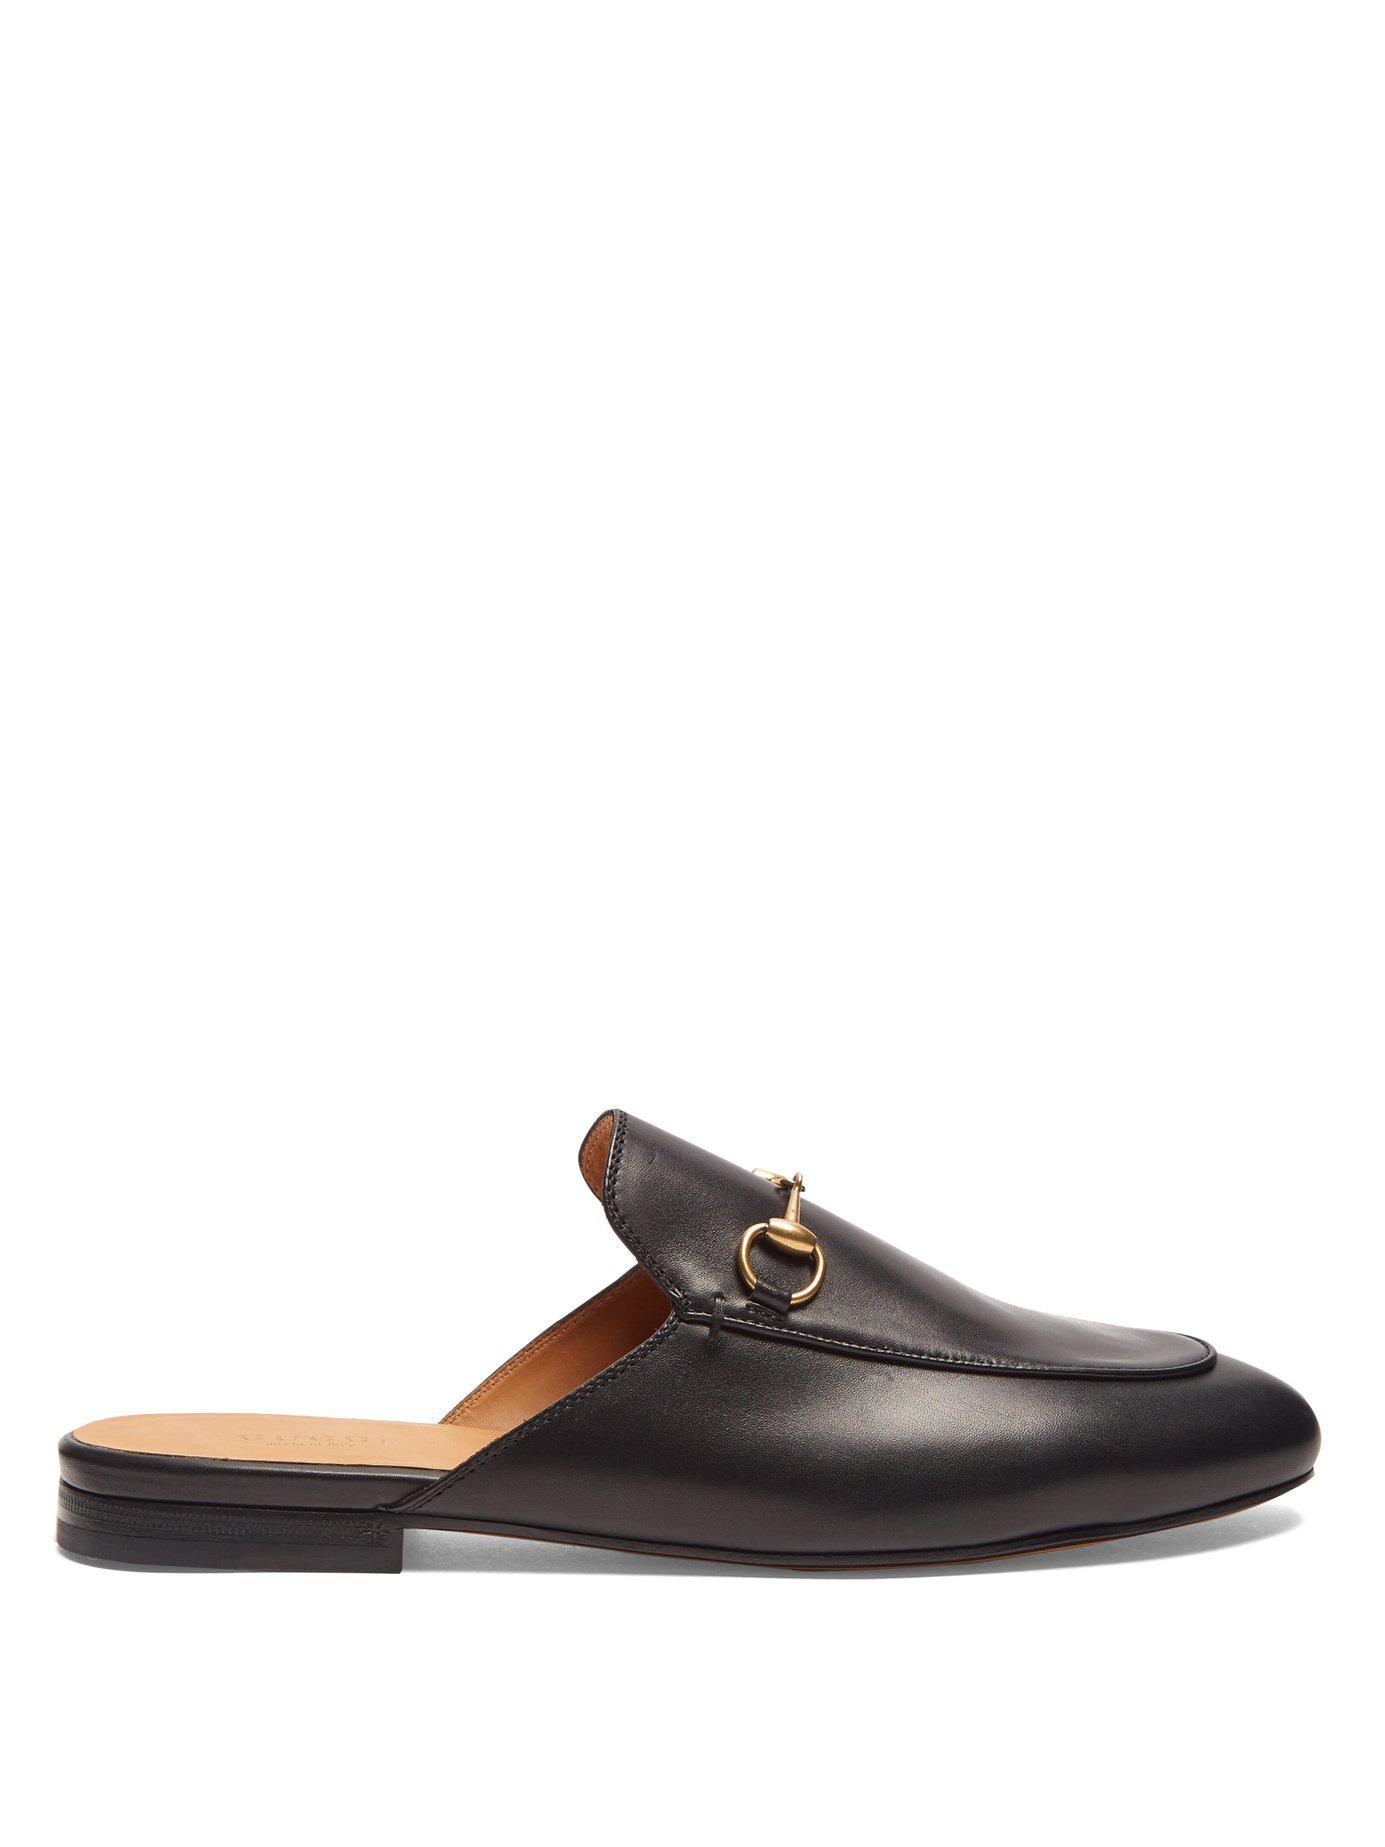 11ab8e1bd15 Lyst - Gucci Princetown Leather Backless Loafers in Black - Save 14%